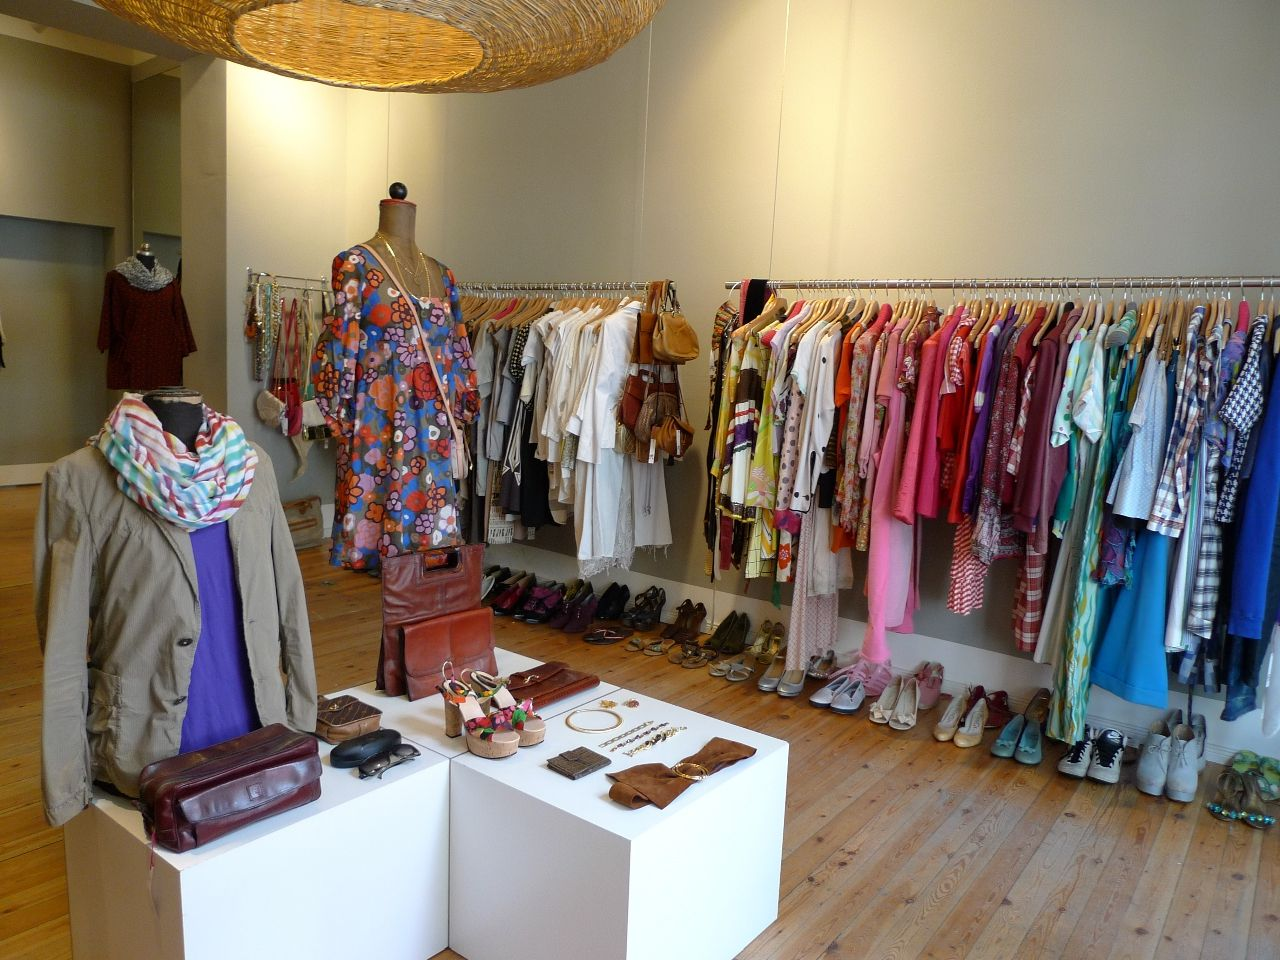 c26fe3a4eac From the movie set via the second-hand store to your own closet - Astrid  Lafos and Sandra Keil sell in their store hardly-worn designer clothing, ...